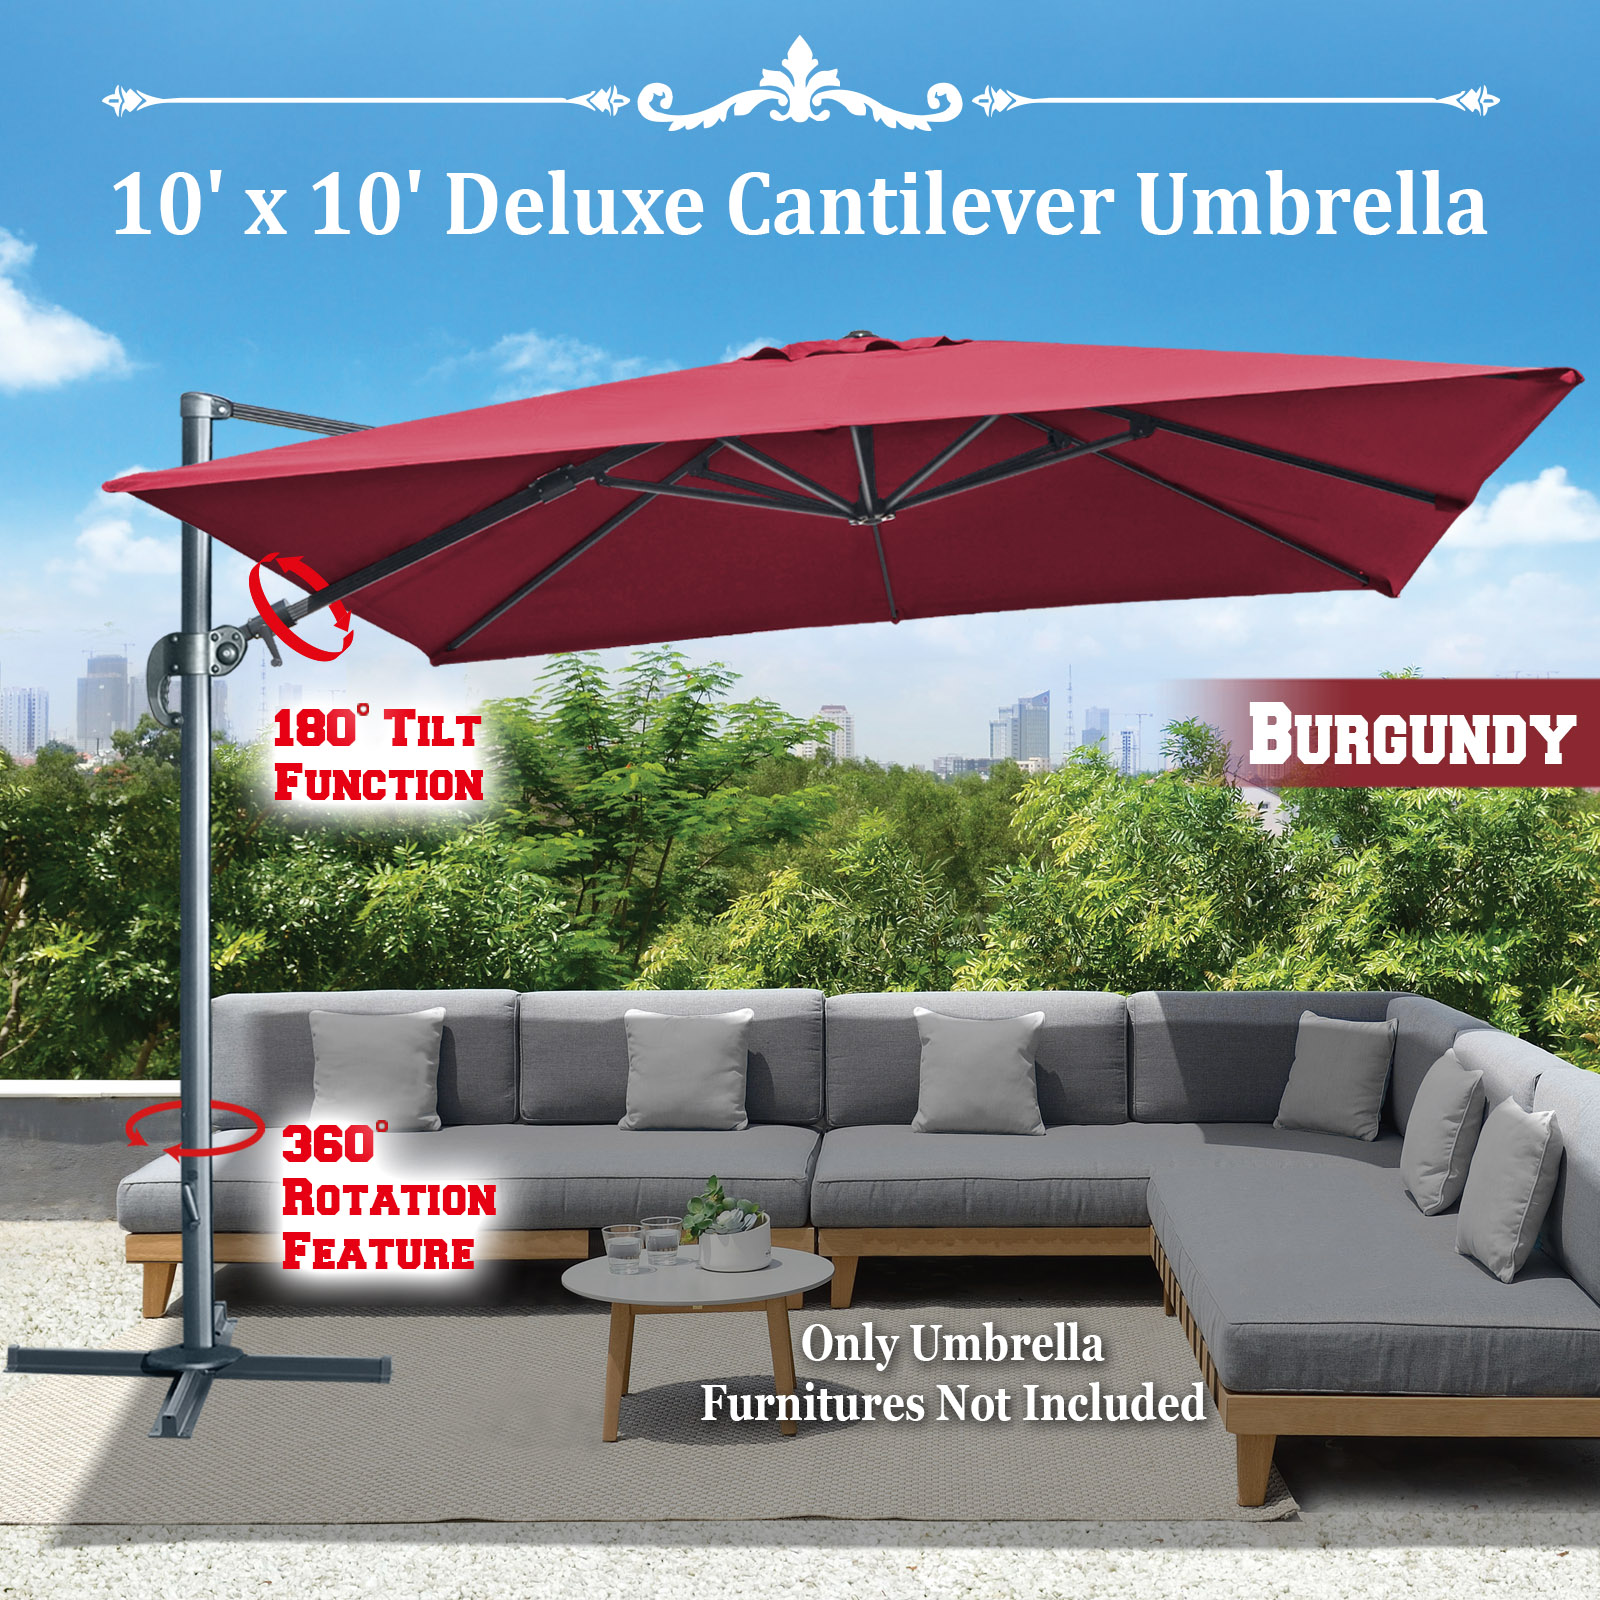 Strong Camel BURGUNDY-10'x10' Deluxe Hanging Cantilever Patio SPA Pool Side Umbrella Heavyduty Outdoor Sunshade Offset Umbrella UV50+ Tilt & 360 Rotation, with Protect Cover